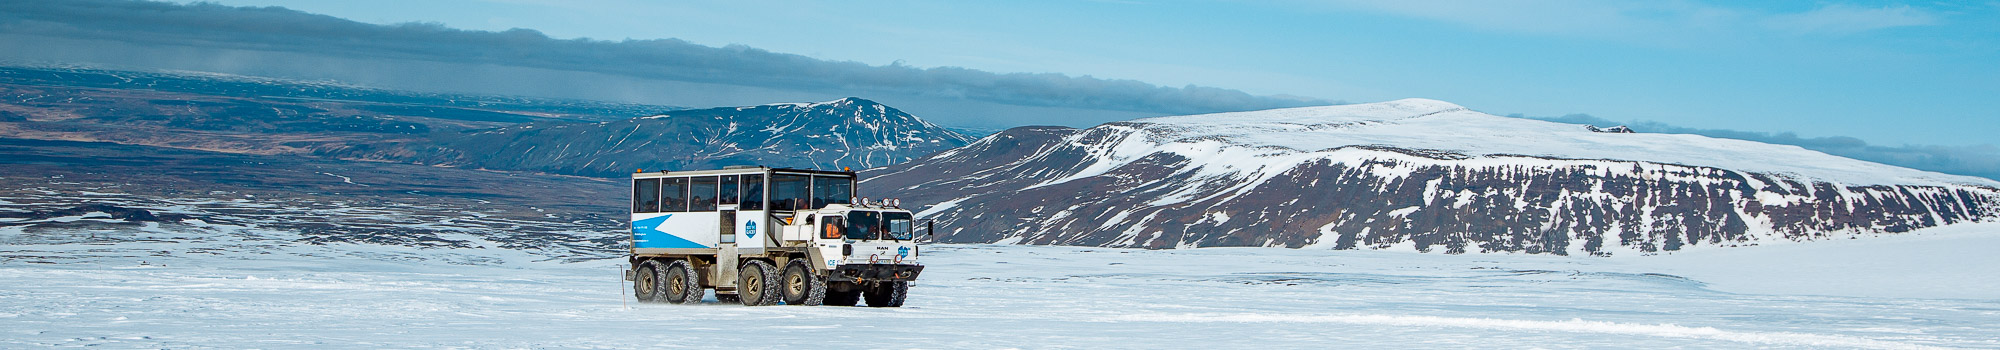 Super truck on a glacier in Iceland